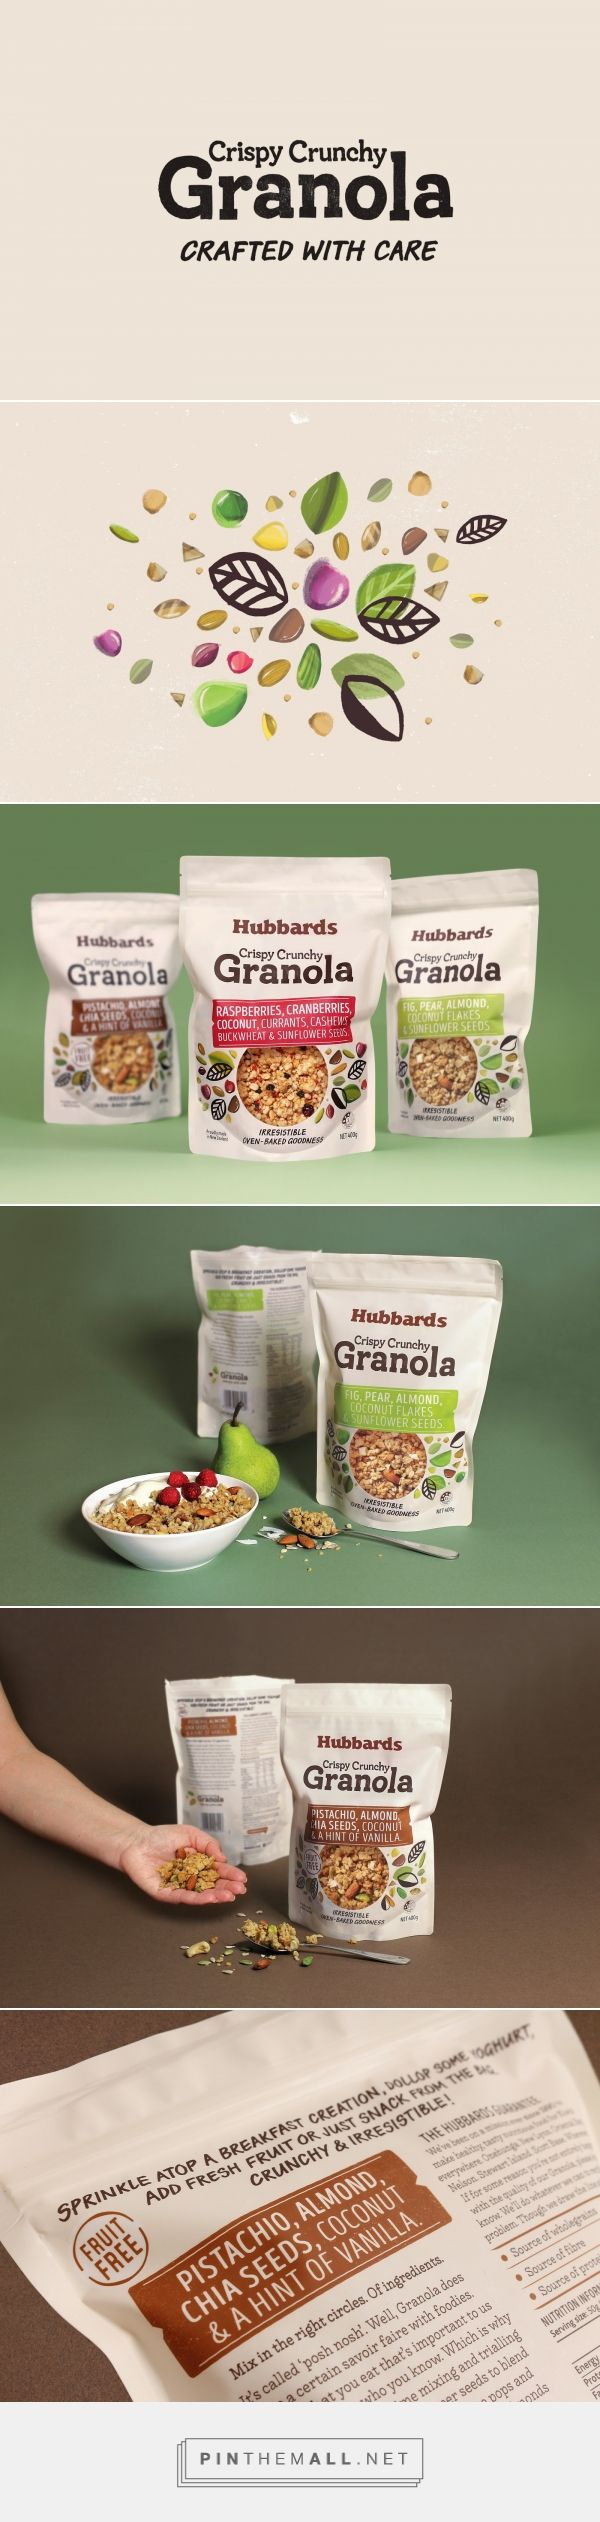 Hubbards Granola - Packaging of the World - Creative Package Design Gallery - http://www.packagingoftheworld.com/2017/02/hubbards-granola.html